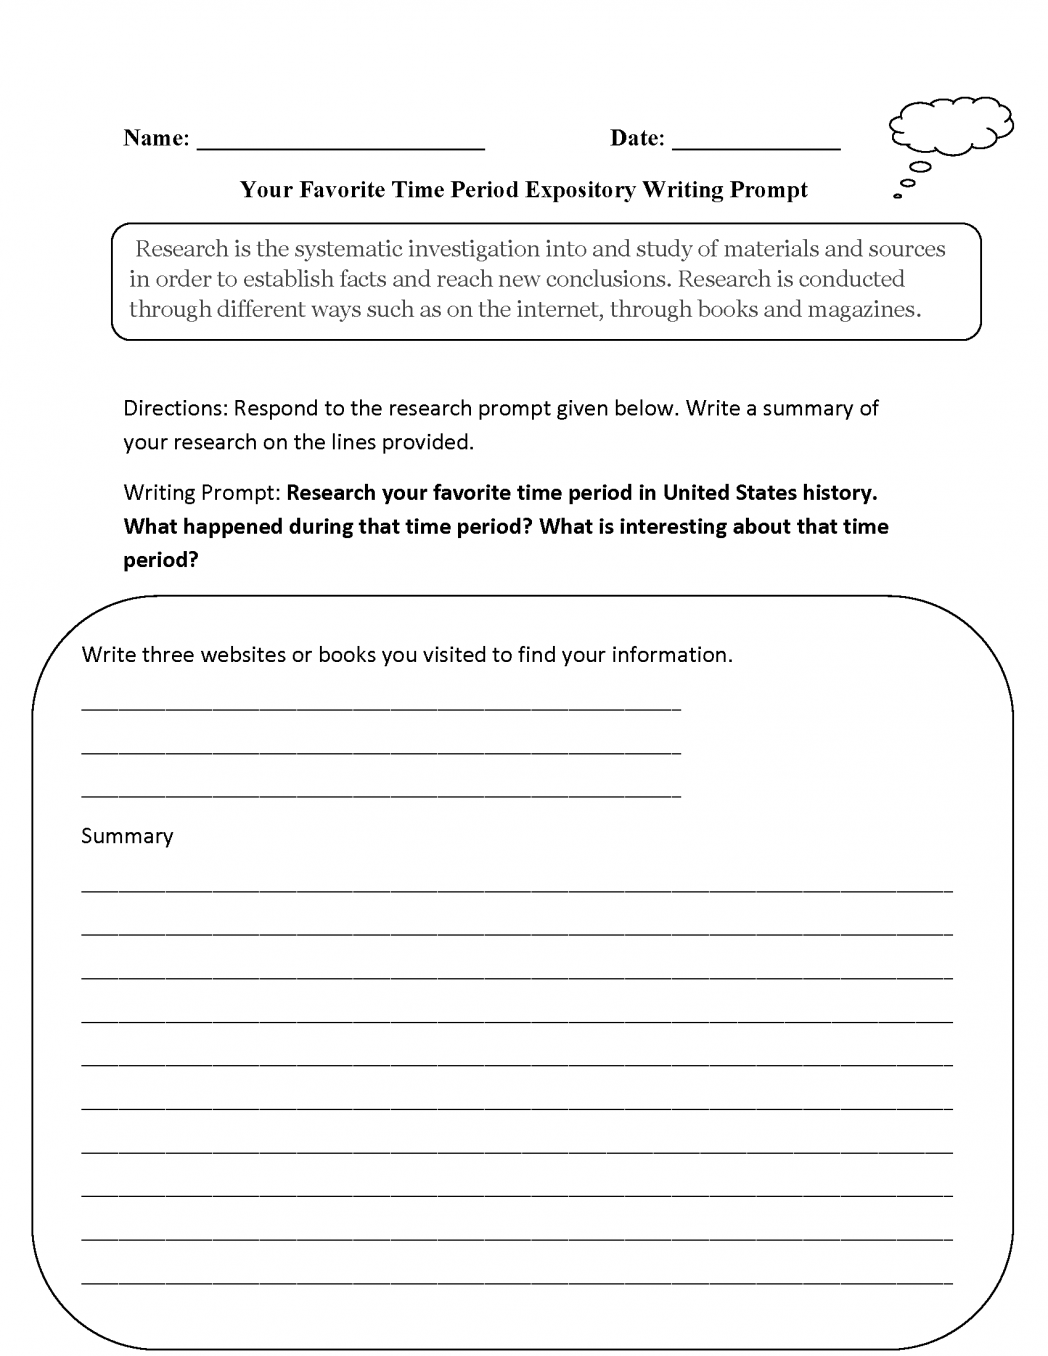 018 Essay Example Good Informative Topics Prompts Favorite Time Period Expository Writing P To Write An On The Topic Of Immigration Remarkable For Secondary School 4th Grade 5th Full